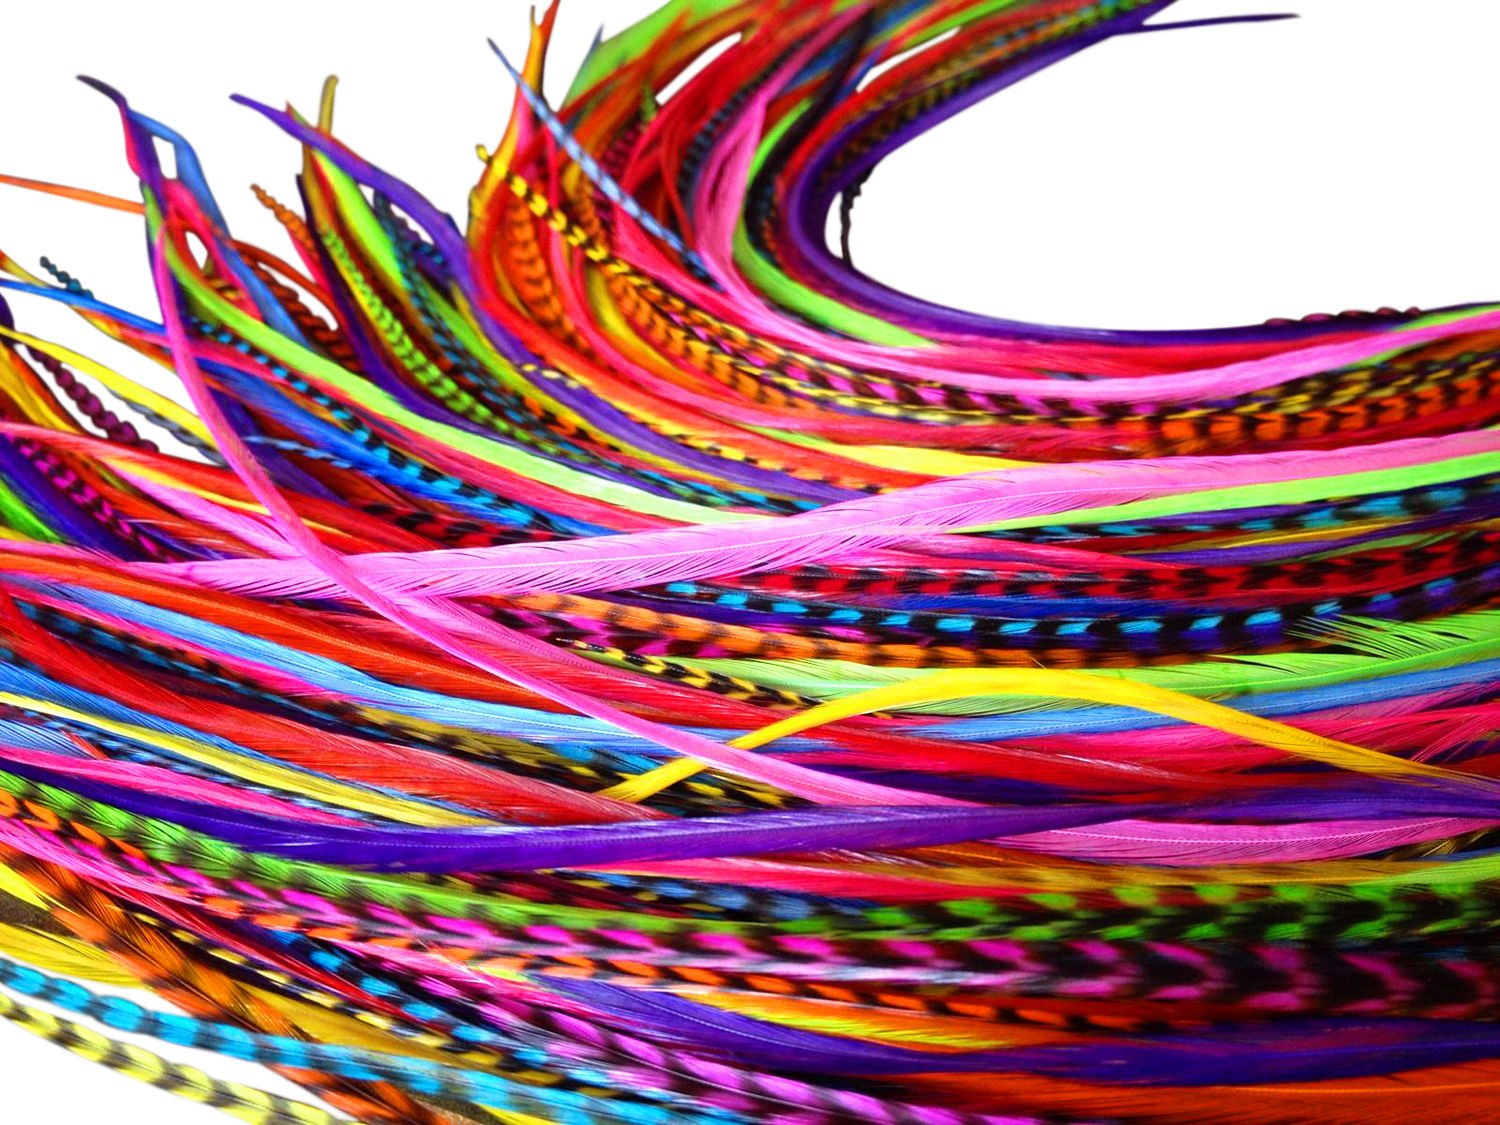 Feather Hair Extensions, 100% Real Rooster Feathers, Long Rainbow Colors, 20 Feathers with Bonus FREE Beads and Loop Tool Kit, By Feather Lily RAIN by Feather Lily